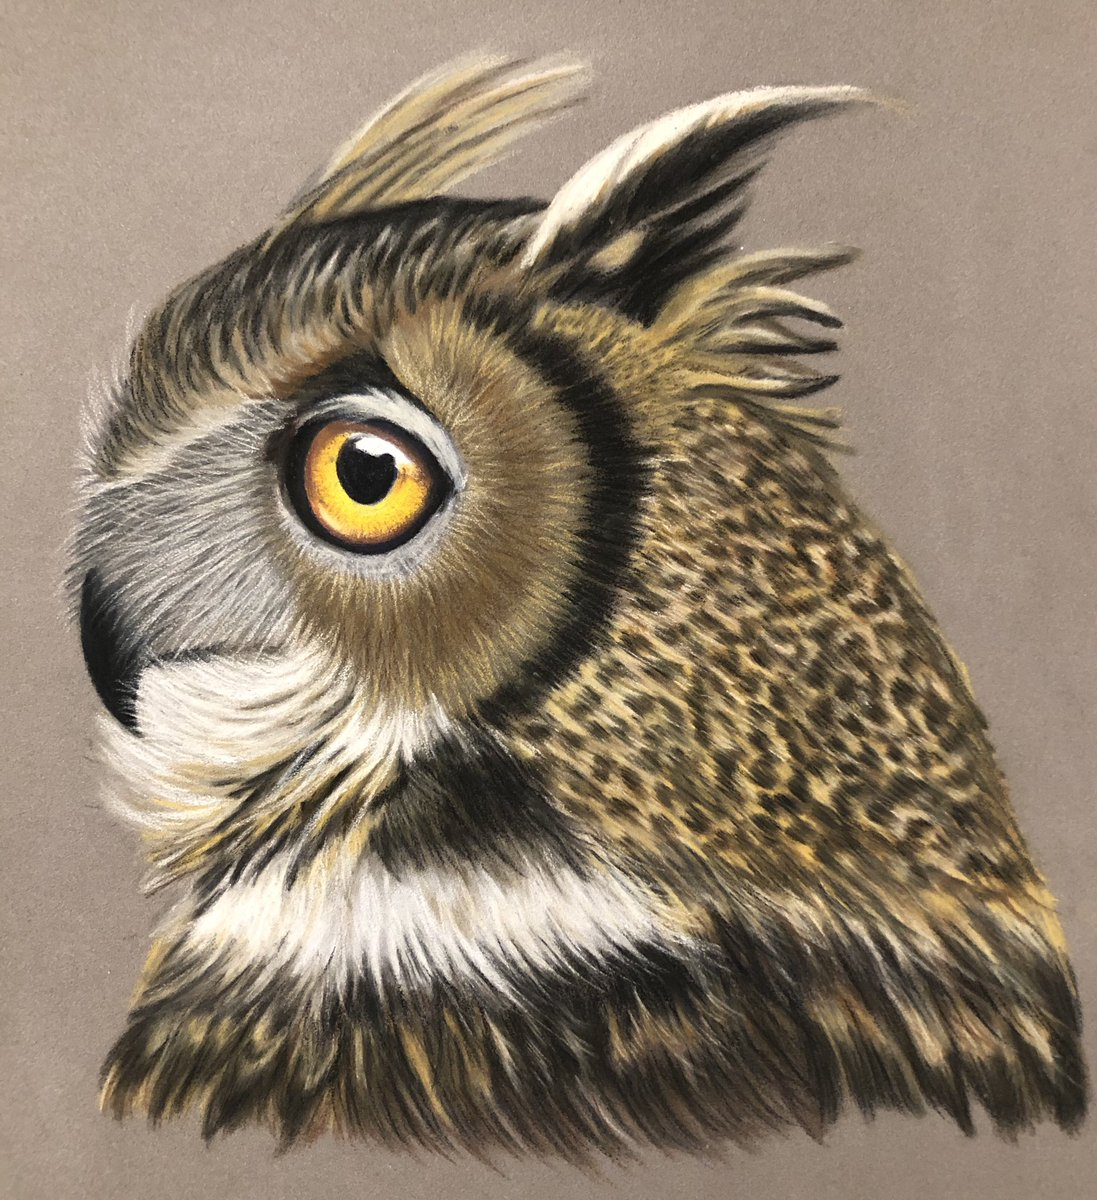 It's been a while since I drew an #Owl I enjoyed spending time on this little guy 🦉😃 https://t.co/Bd9TOM93MW